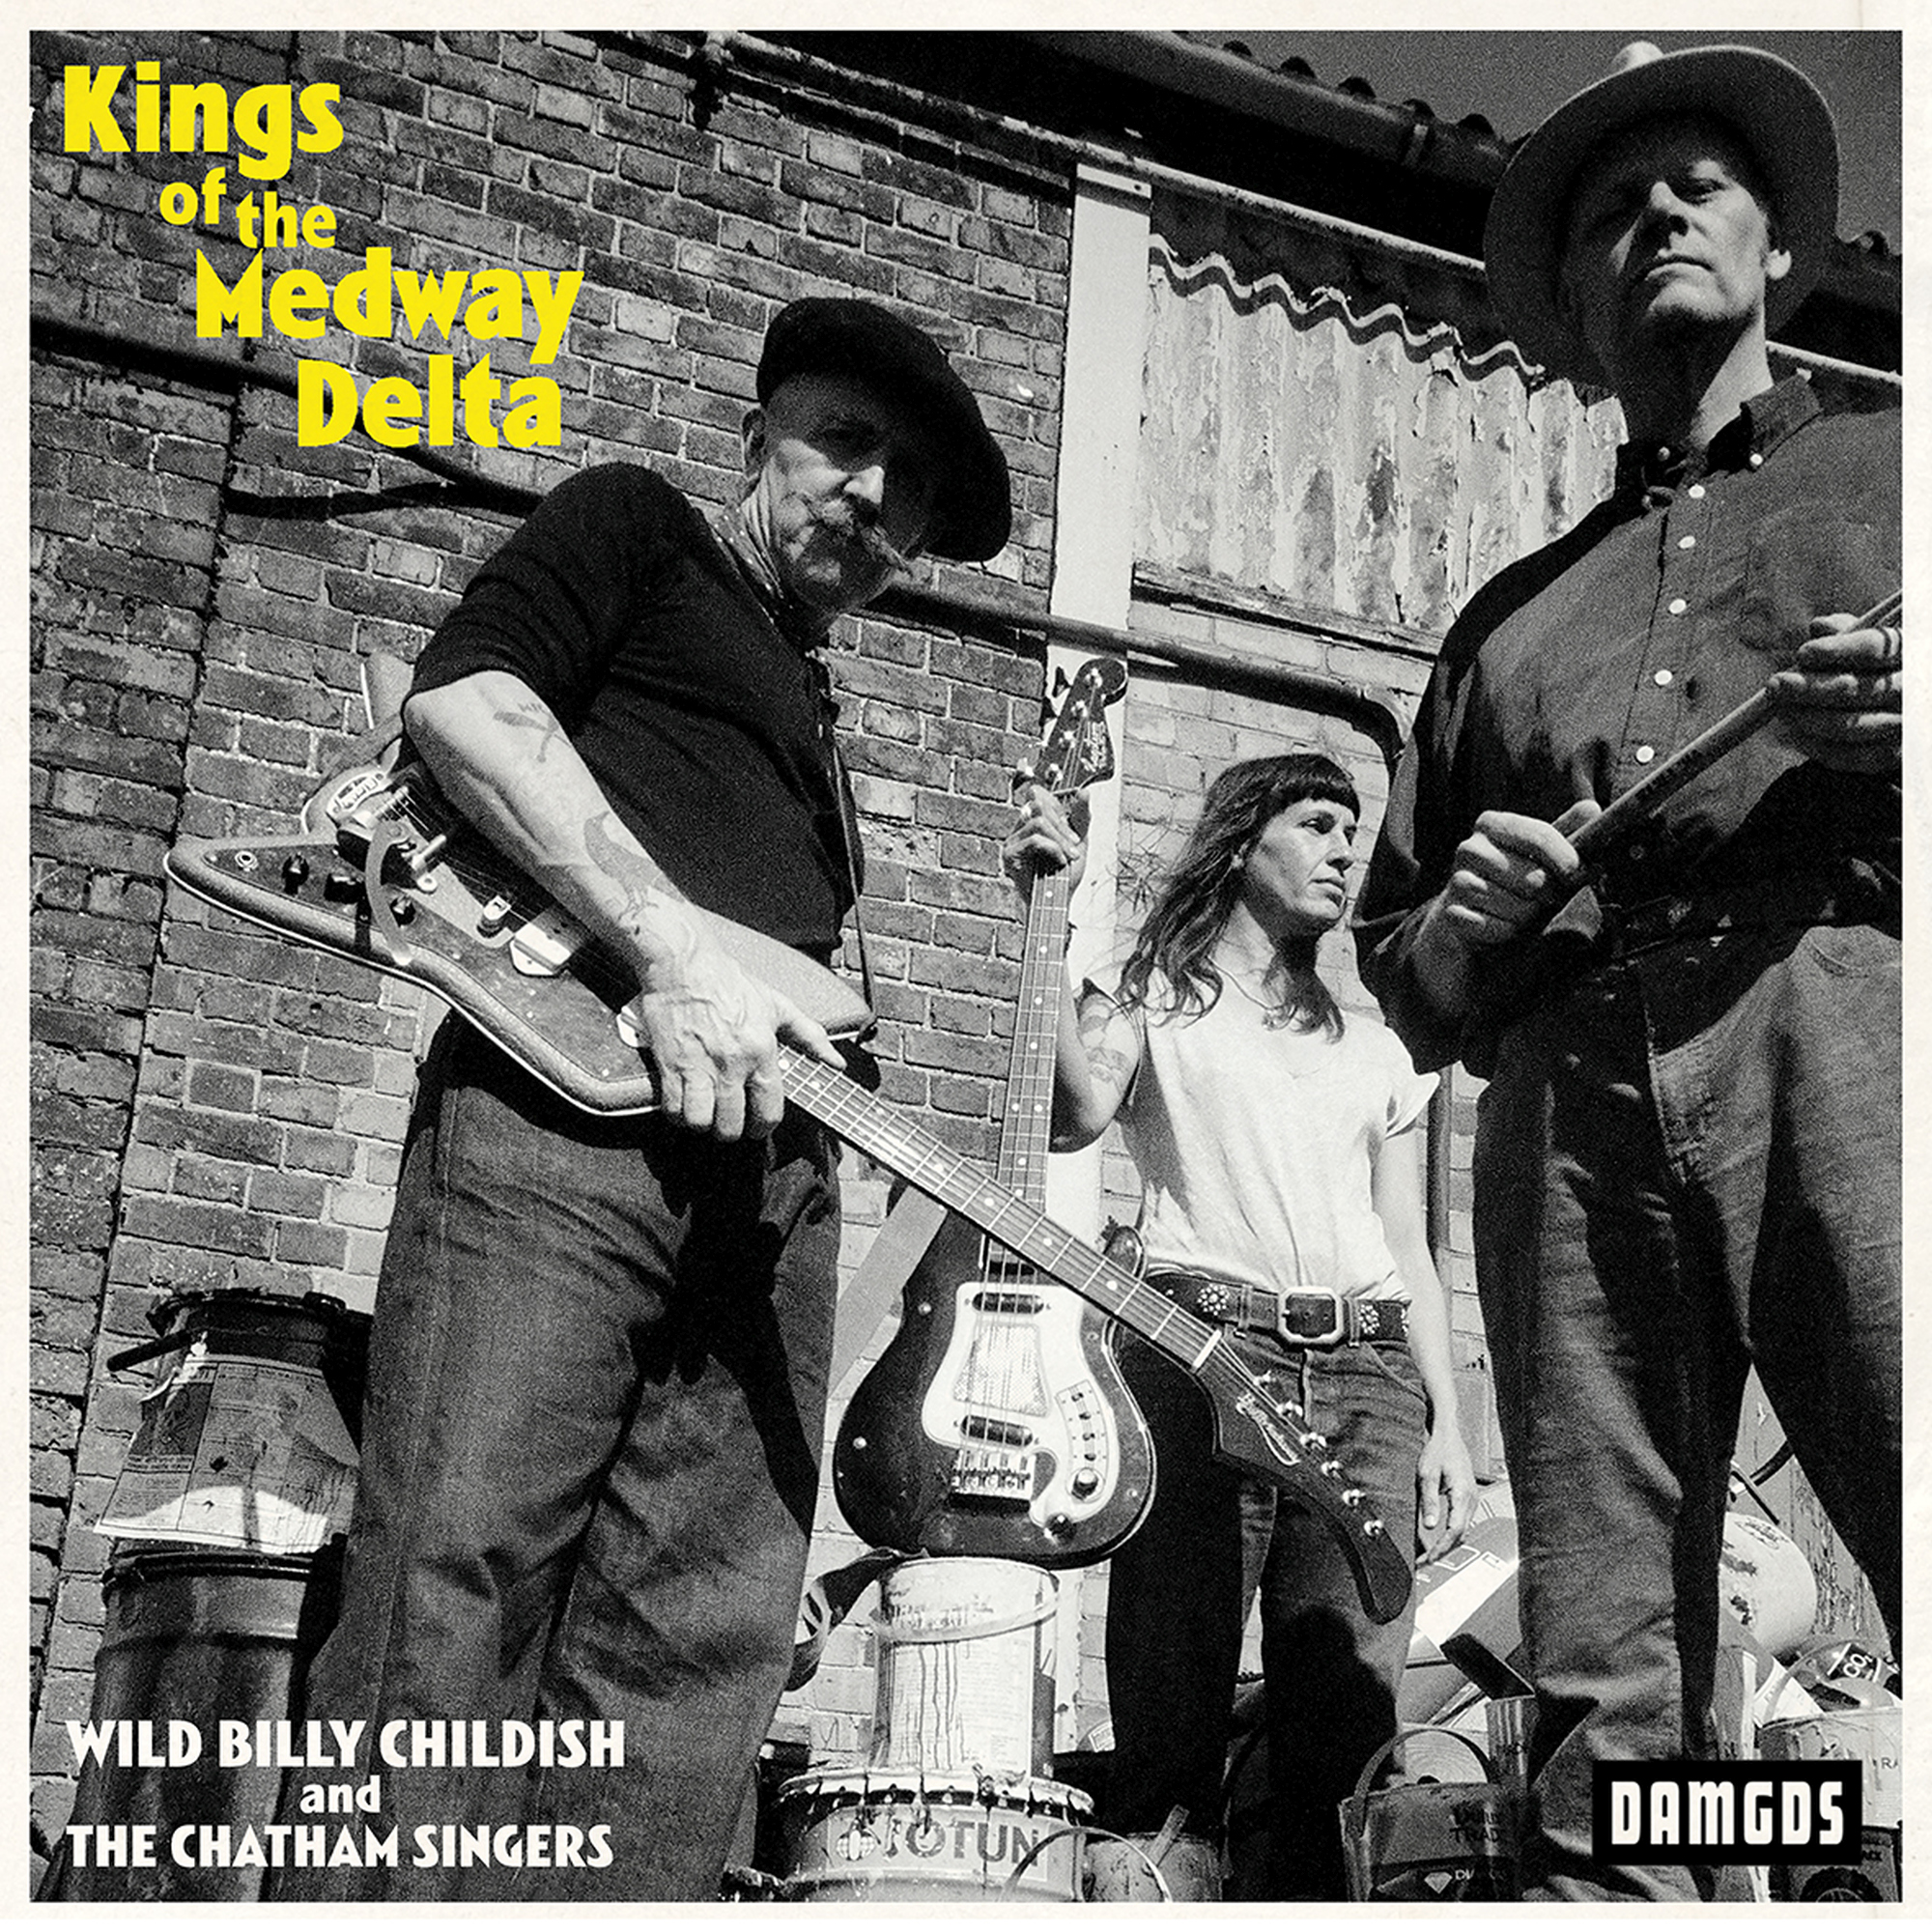 Wild Billy Childish and The Chatham Singers - Kings of the Medway ...